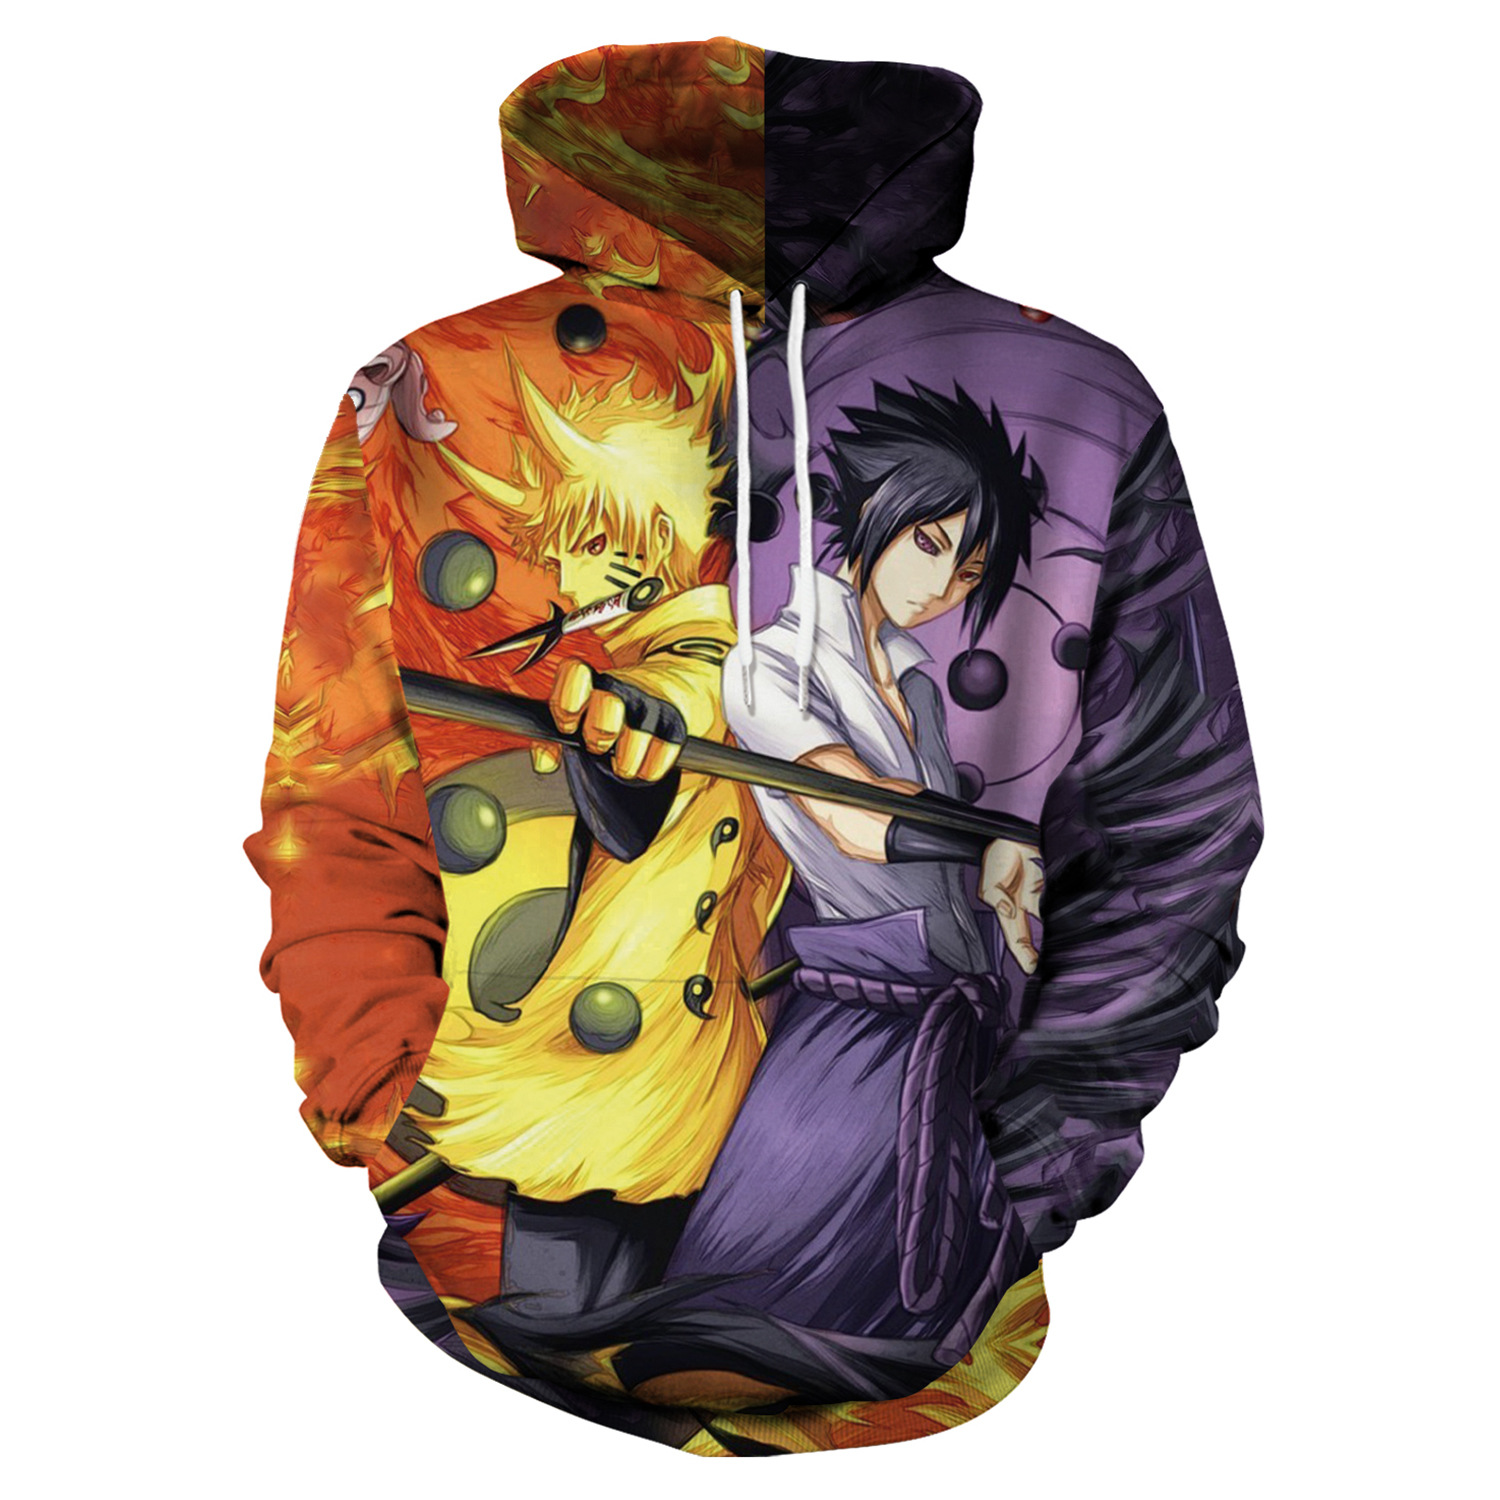 Hoodies Anime Naruto Print Hoodies with Hat Men Hoodie Loose Hooded Sweatshirt Sudaderas Para Hombre Streetwear